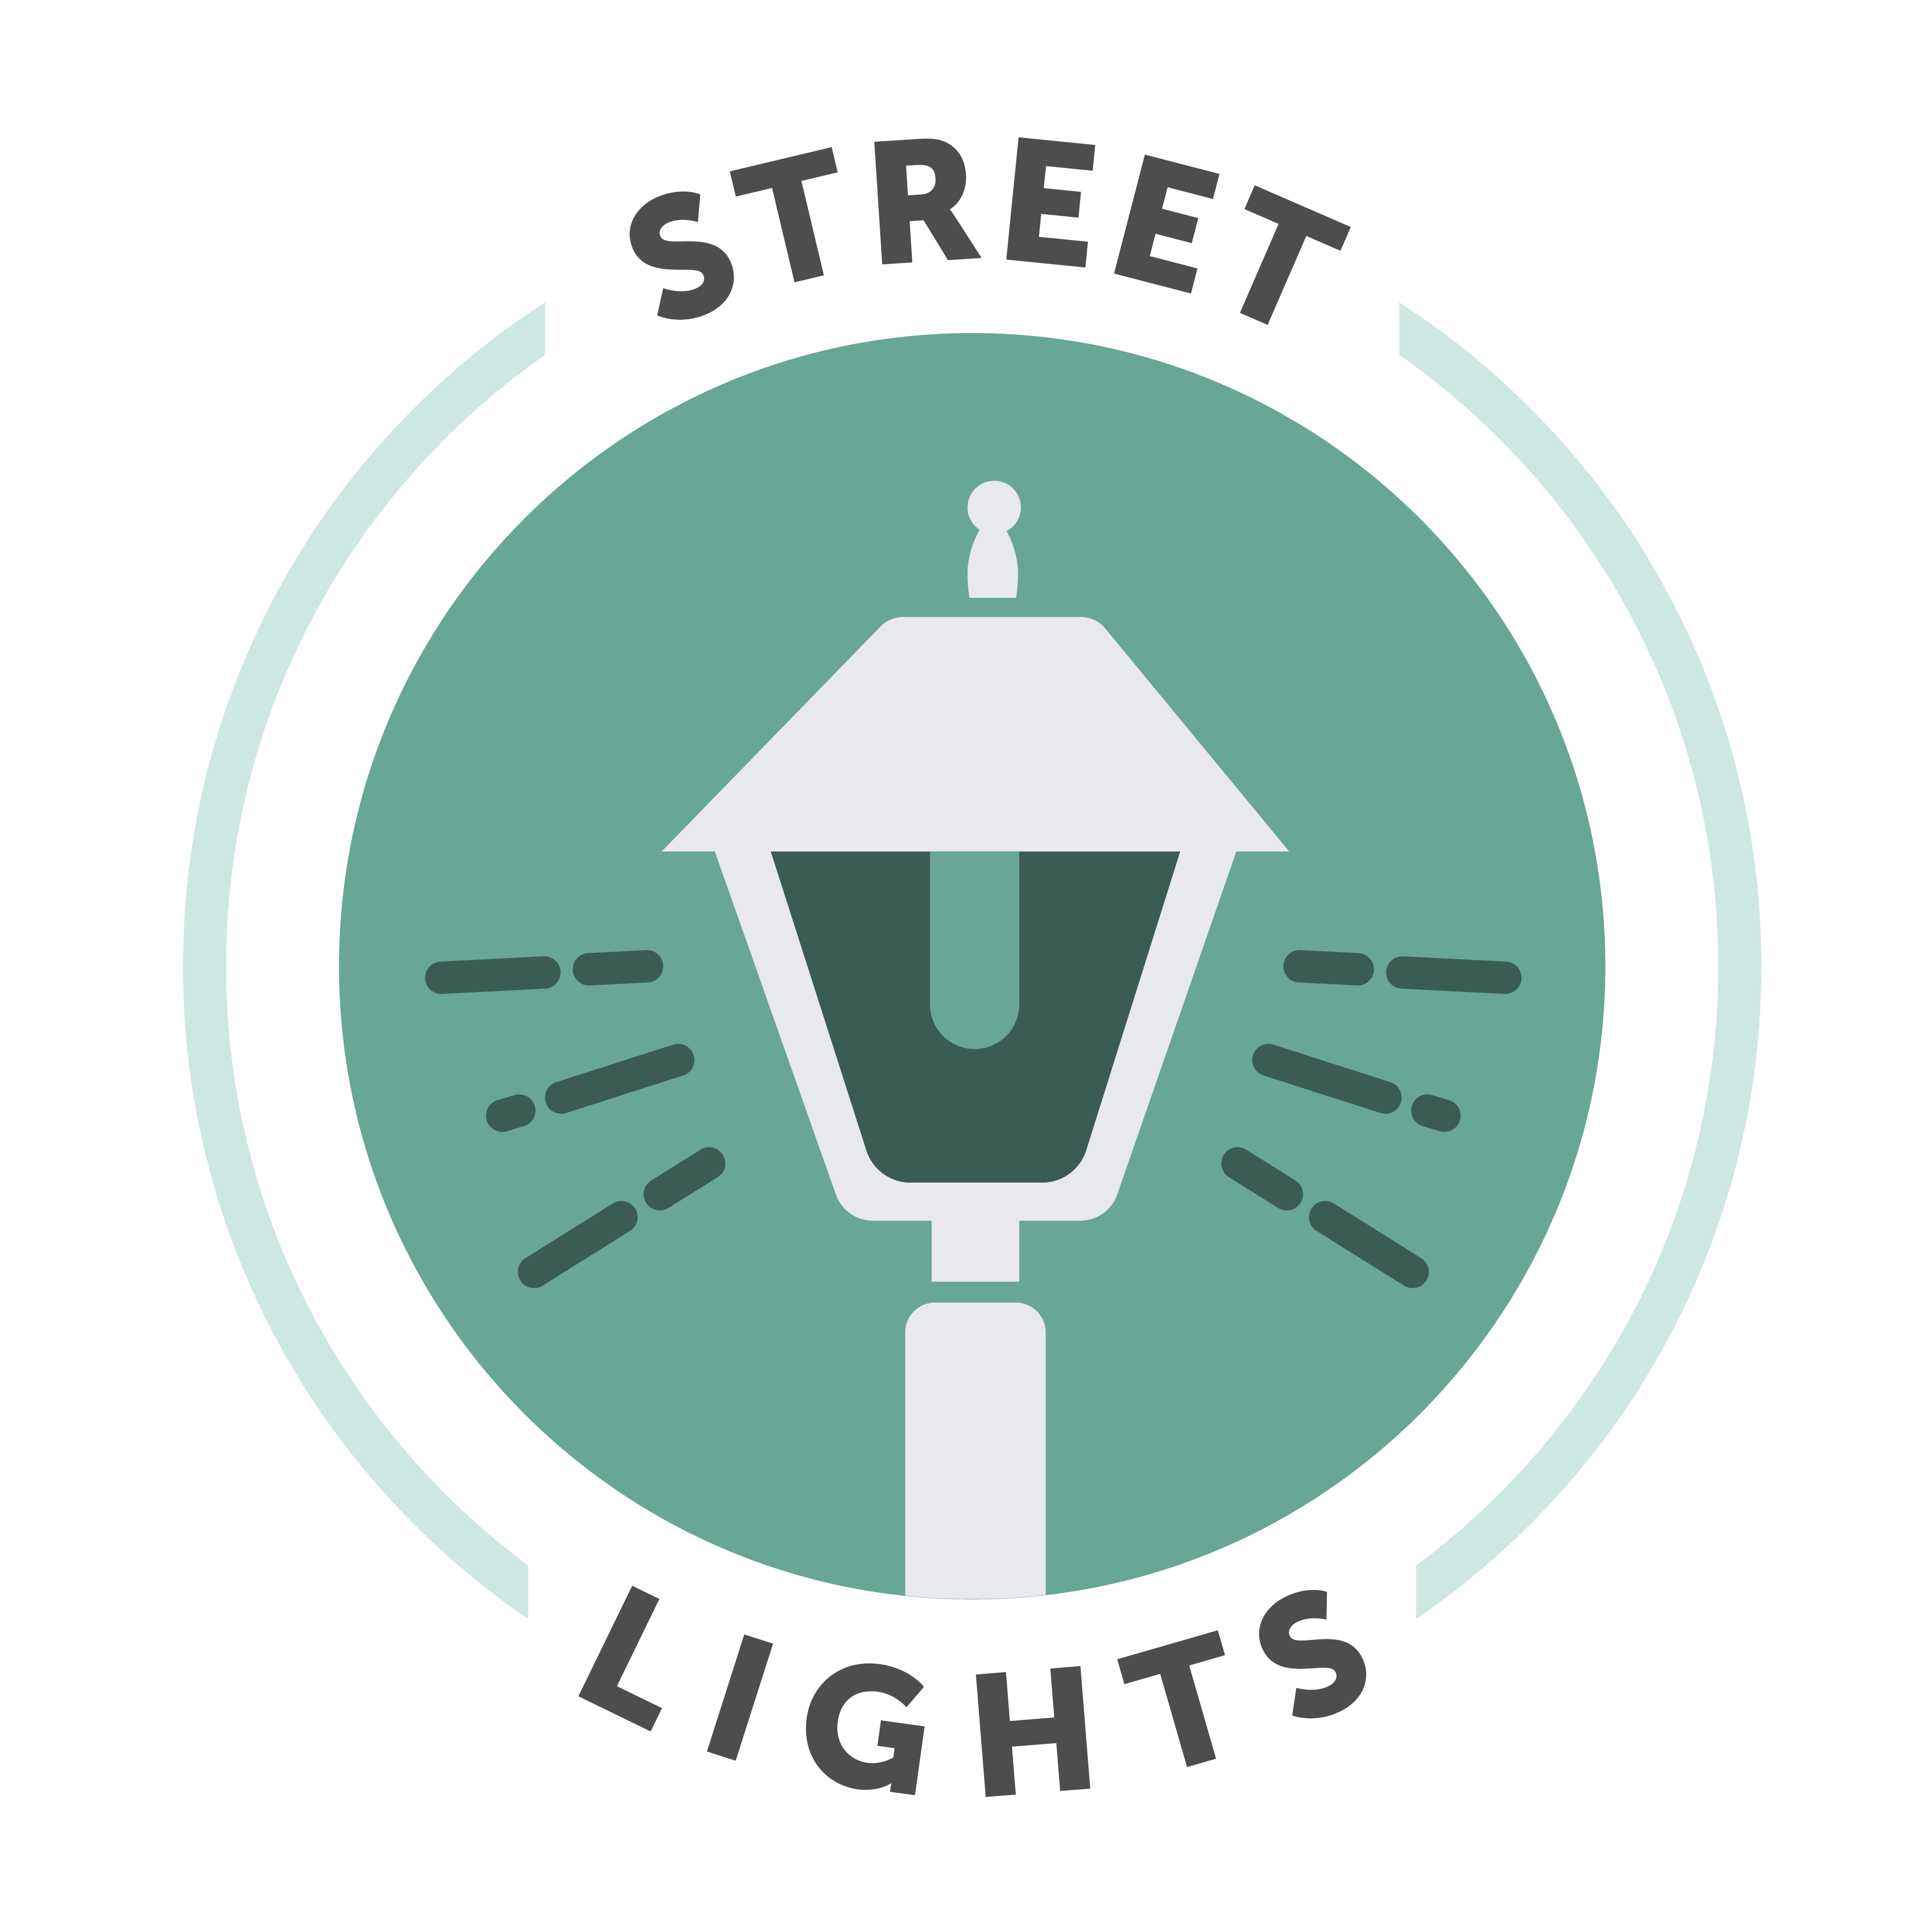 updated street light icon